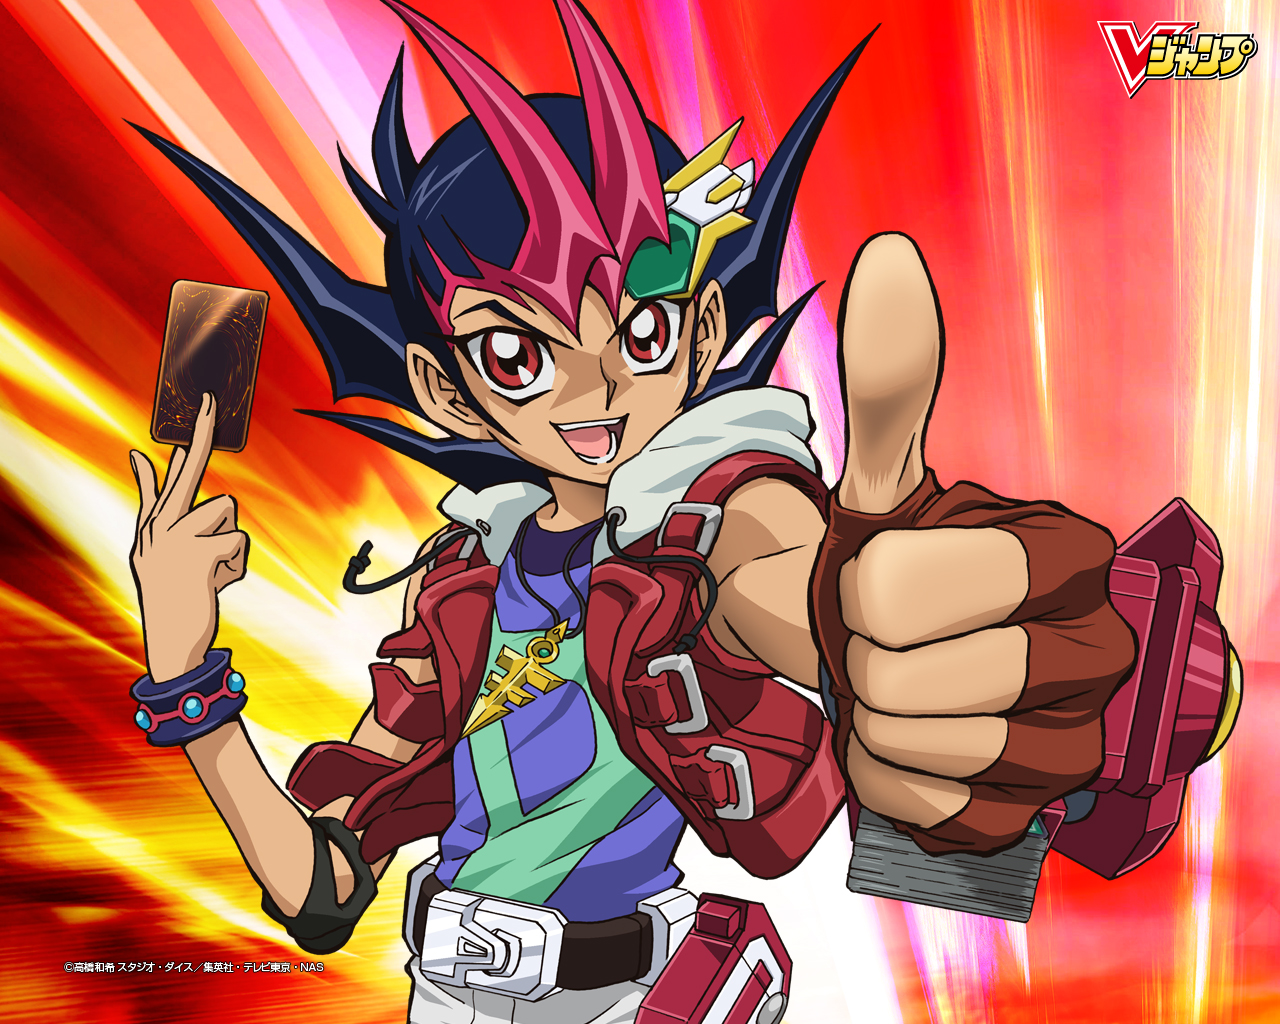 yu gi oh zexal Computer Wallpapers Desktop Backgrounds 1280x1024 1280x1024